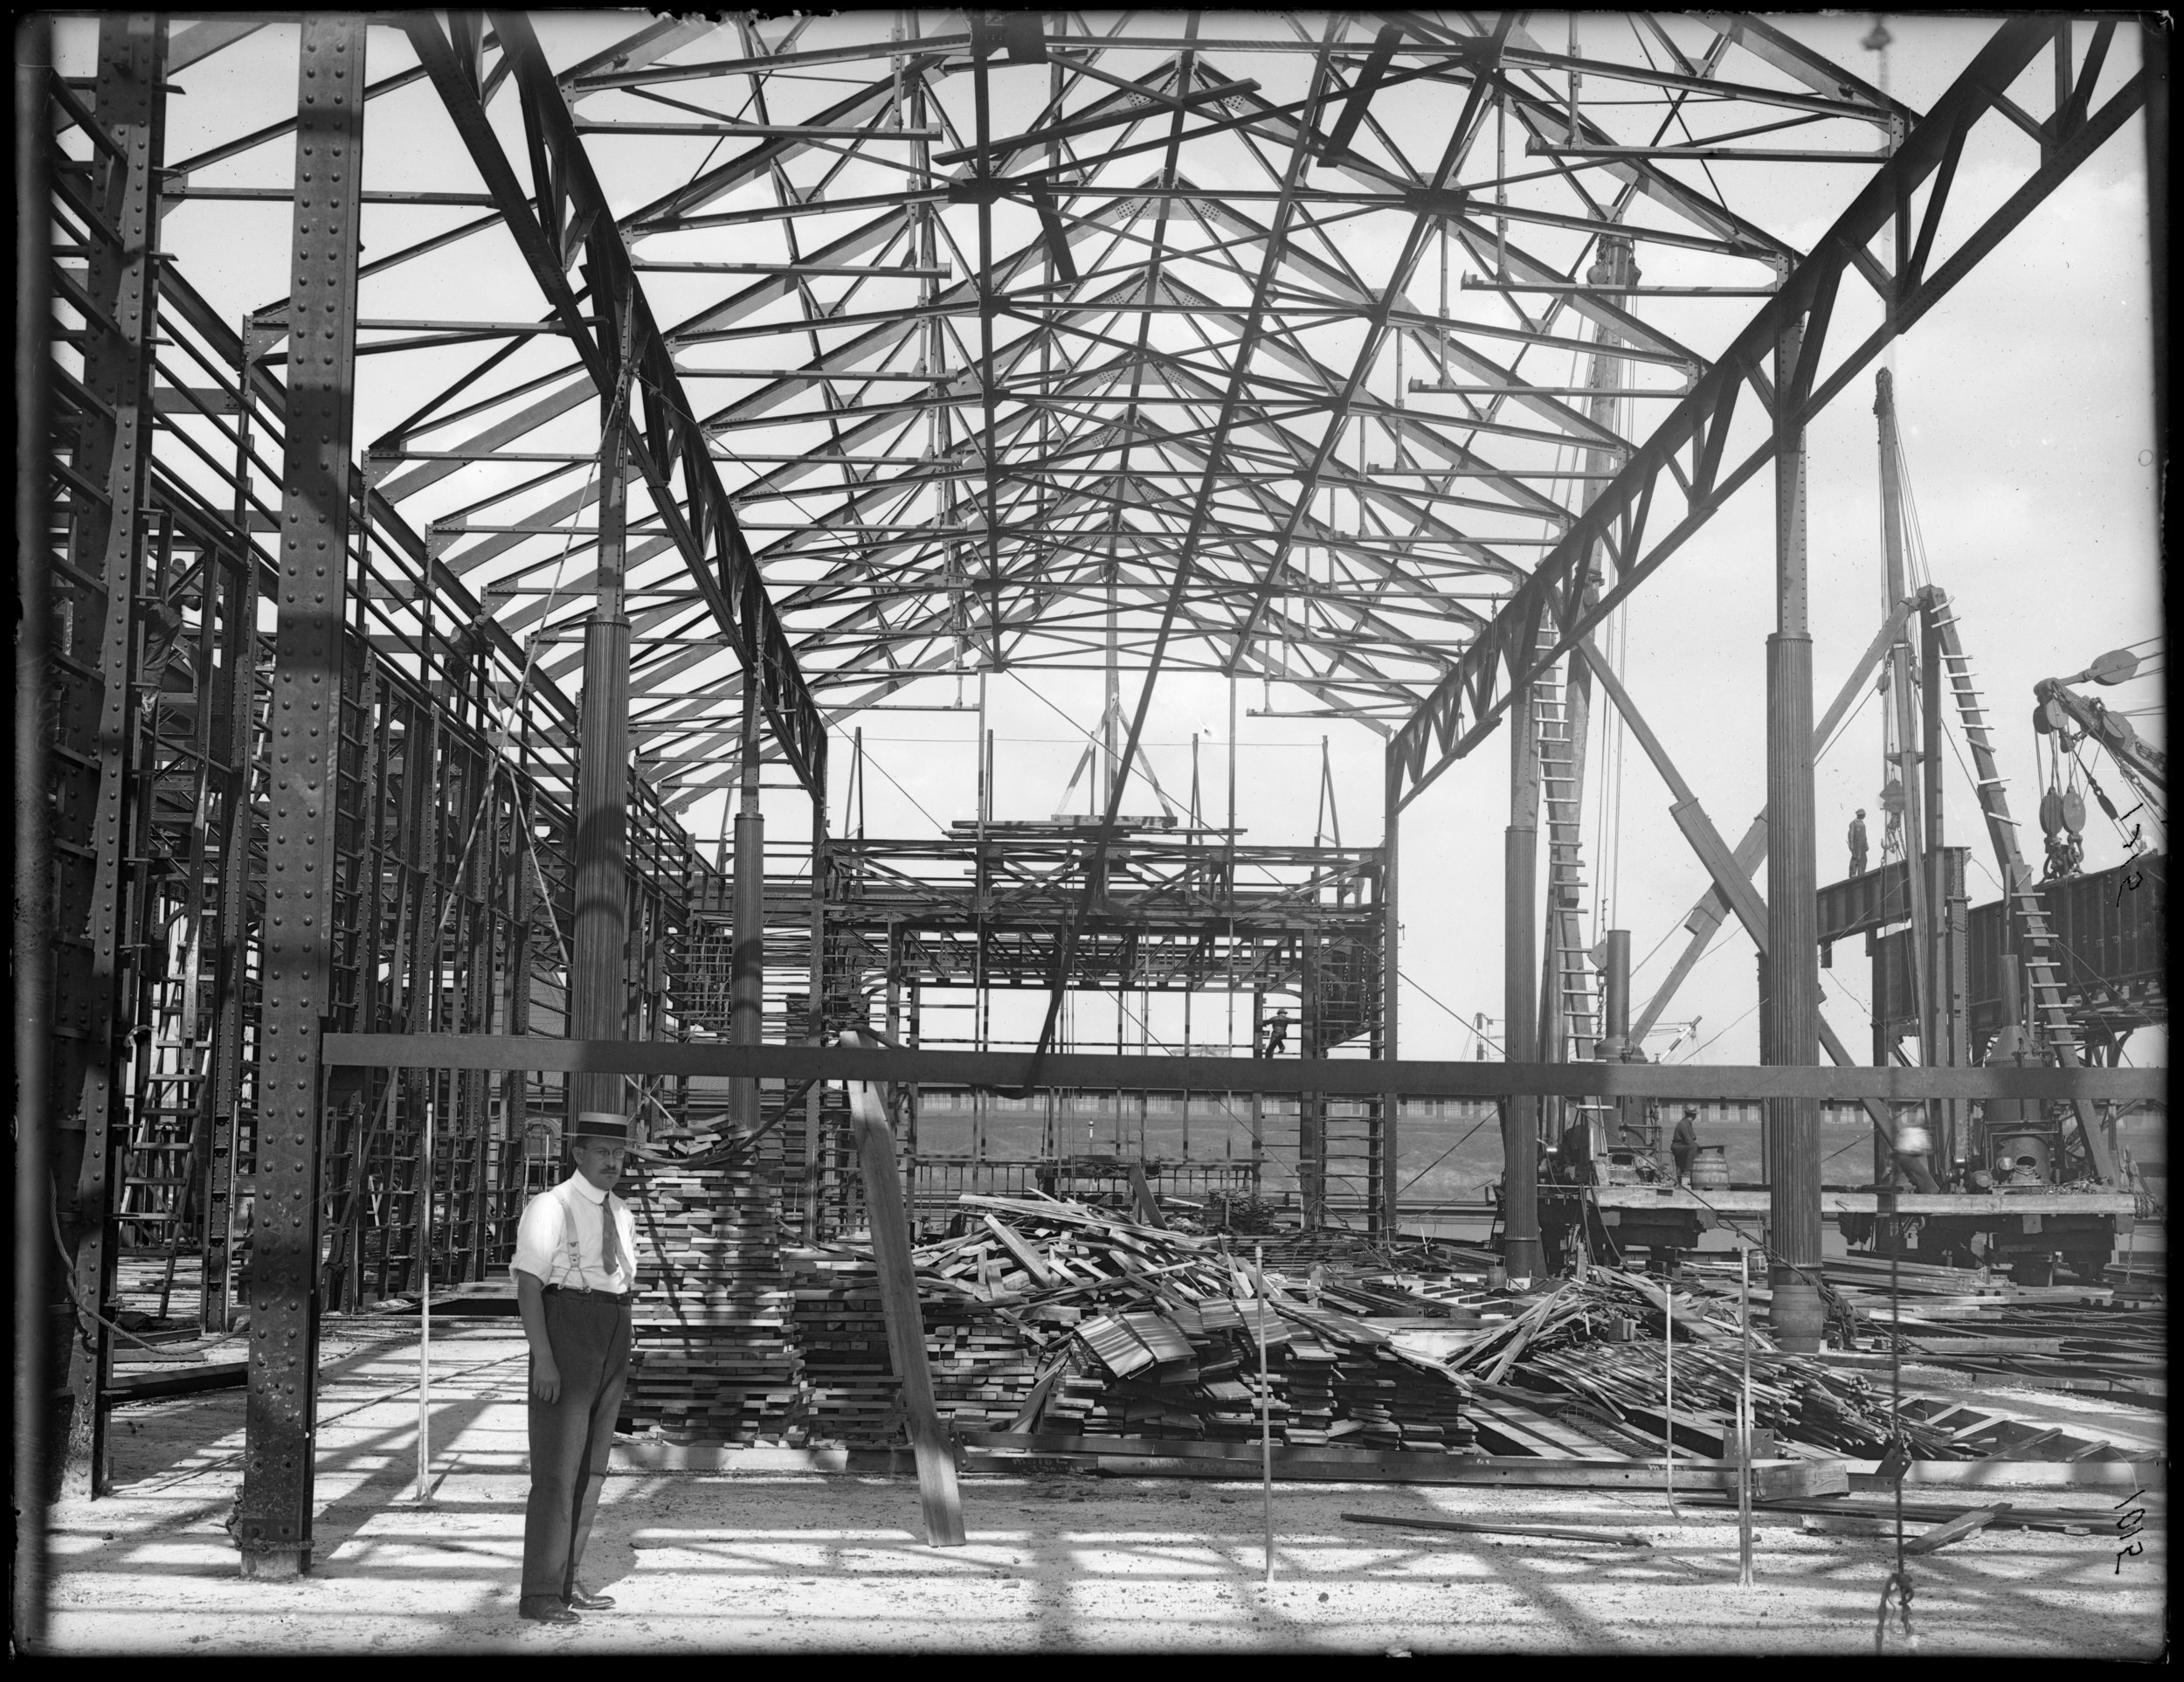 Construction of the 39th Street Ferry House, 1908. The second ferry route to be acquired by the City was the Whitehall Street-39th Street (Brooklyn) route that it took over from The New York and South Brooklyn Ferry and Transportation Company in 1906. Department of Dock and Ferries photographs. NYC Municipal Archives.